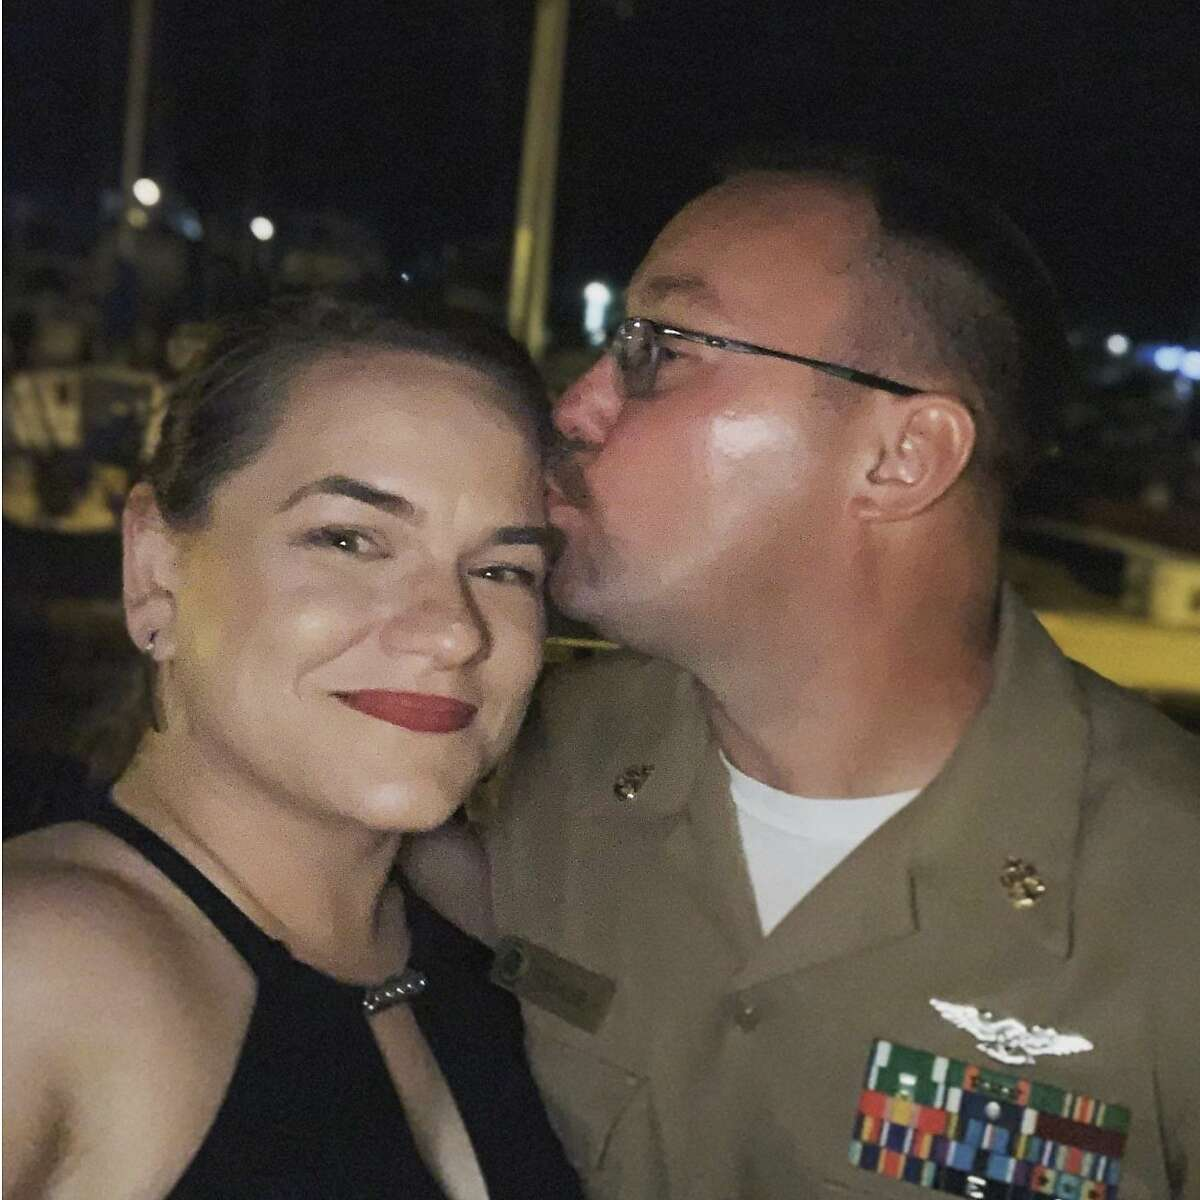 Navy chief petty officer Charles Robert Thacker Jr., is seen with his wife Symantha Thacker in a photograph posted to his Facebook account in October of 2019. Thacker was among the military personnel aboard the USS Roosevelt to be stricken with Covid-19 and he was the first member of the U.S. military to die from the disease. He was found unresponsive in his room aboard the ship and taken to a hospital on the island of Guam, where he and other infected members of the battleship had been taken for treatment.